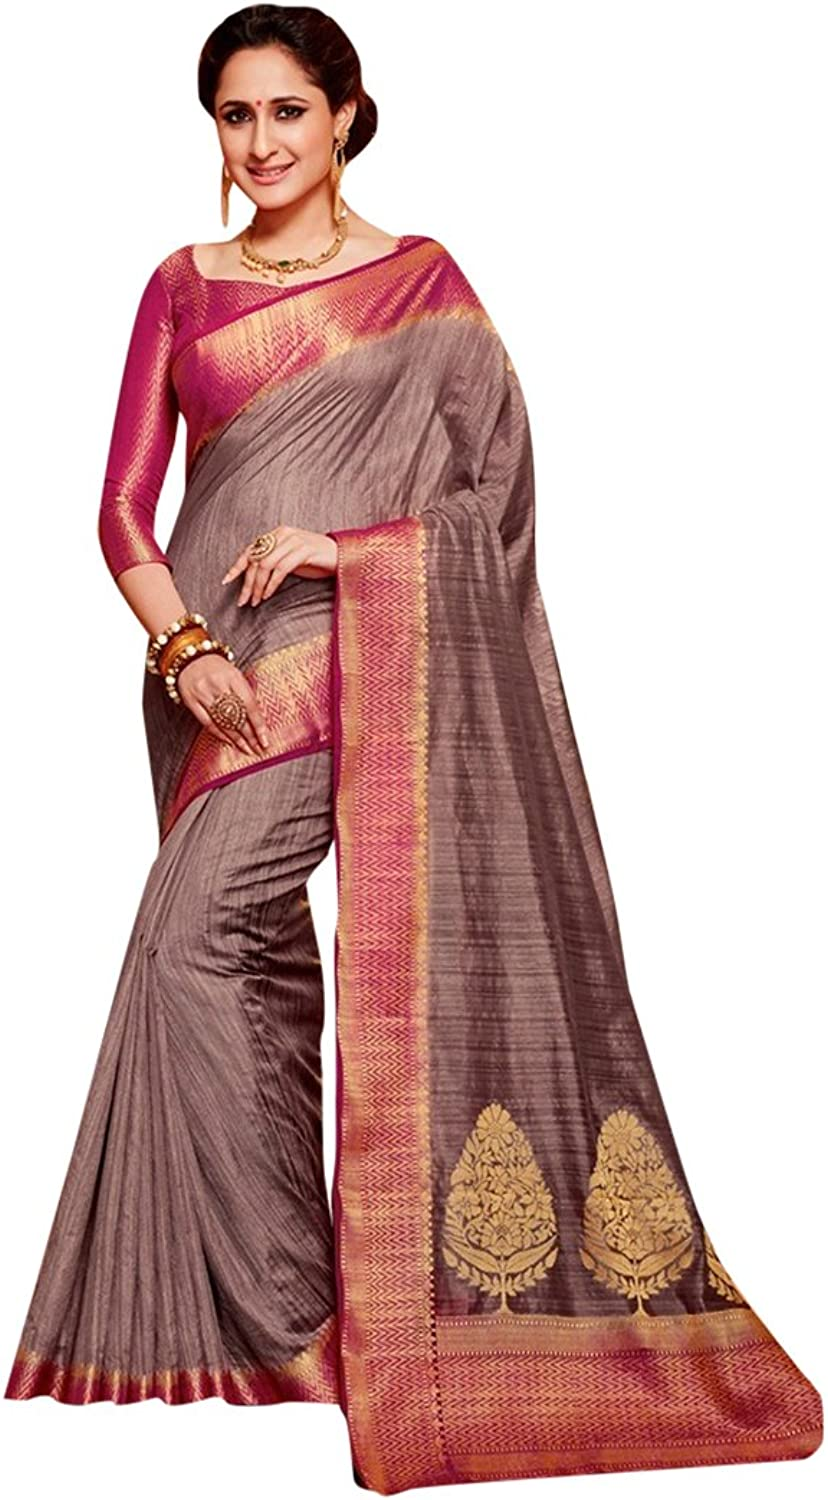 Designer Bollywood Silk Bridal Saree Sari for Women Latest Indian Ethnic Wedding Collection Blouse Party Wear Festive Ceremony 2602 21